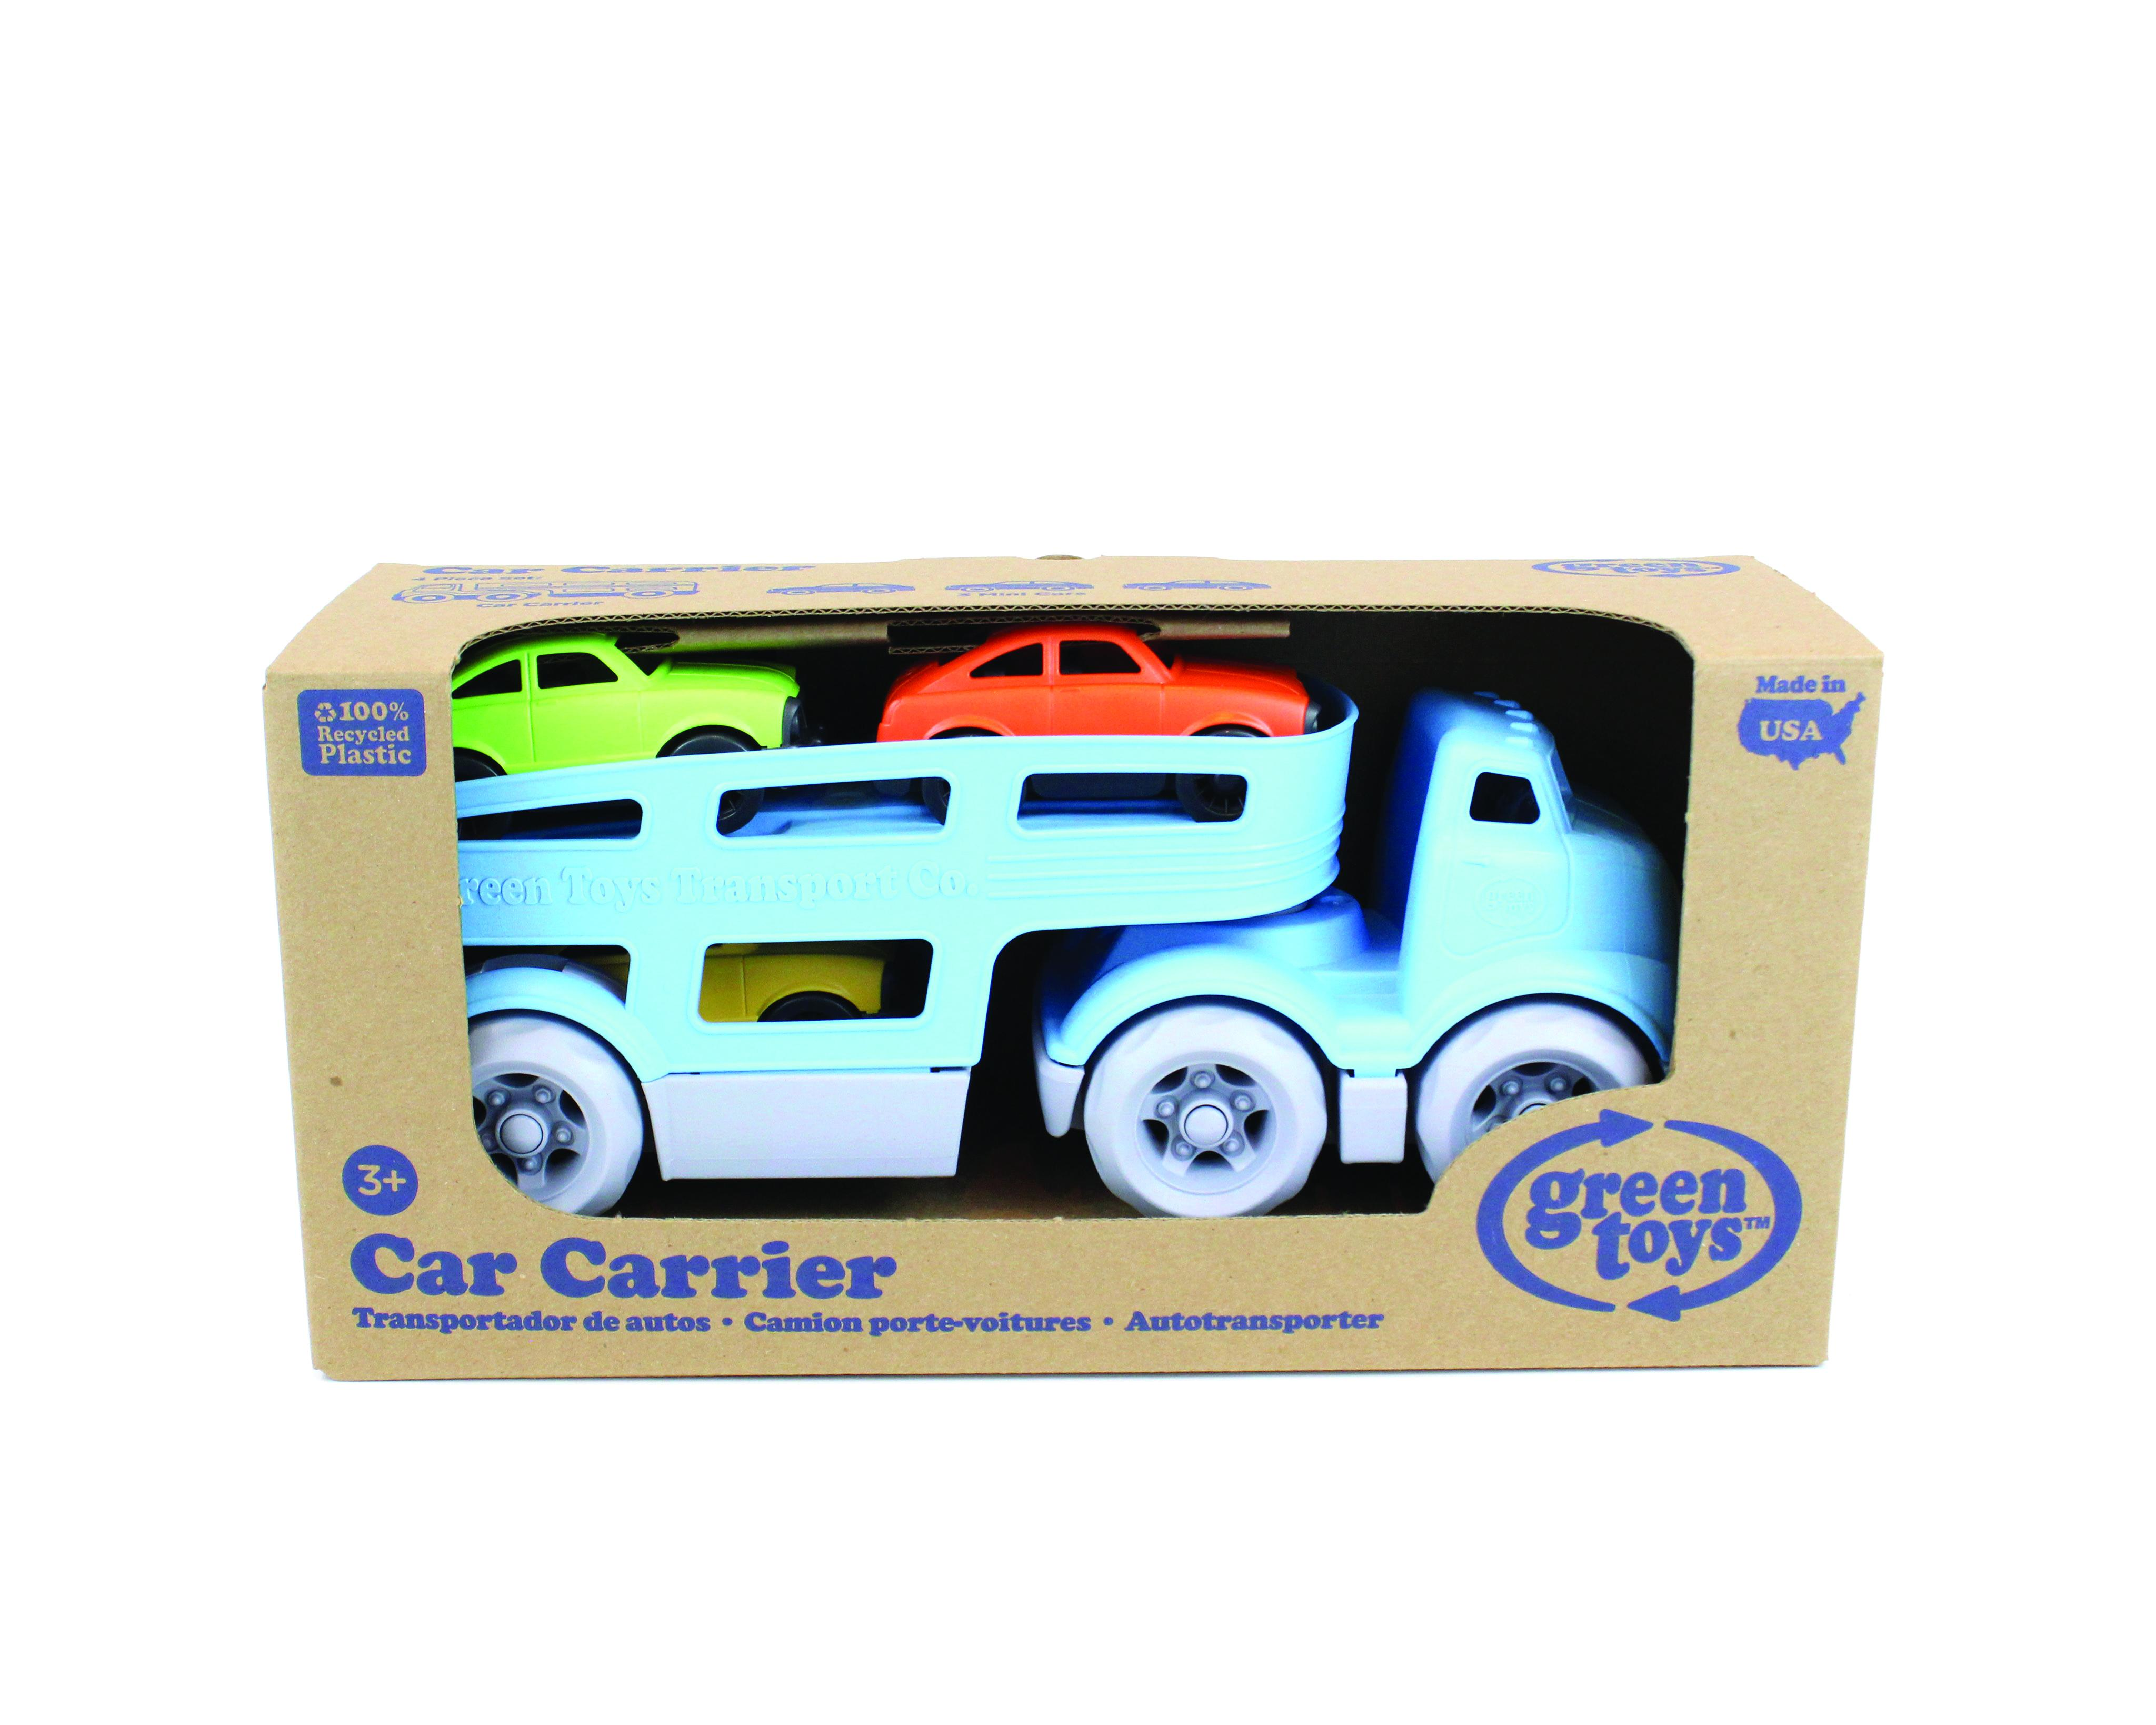 Cardboard packaging holding car transporter toy.